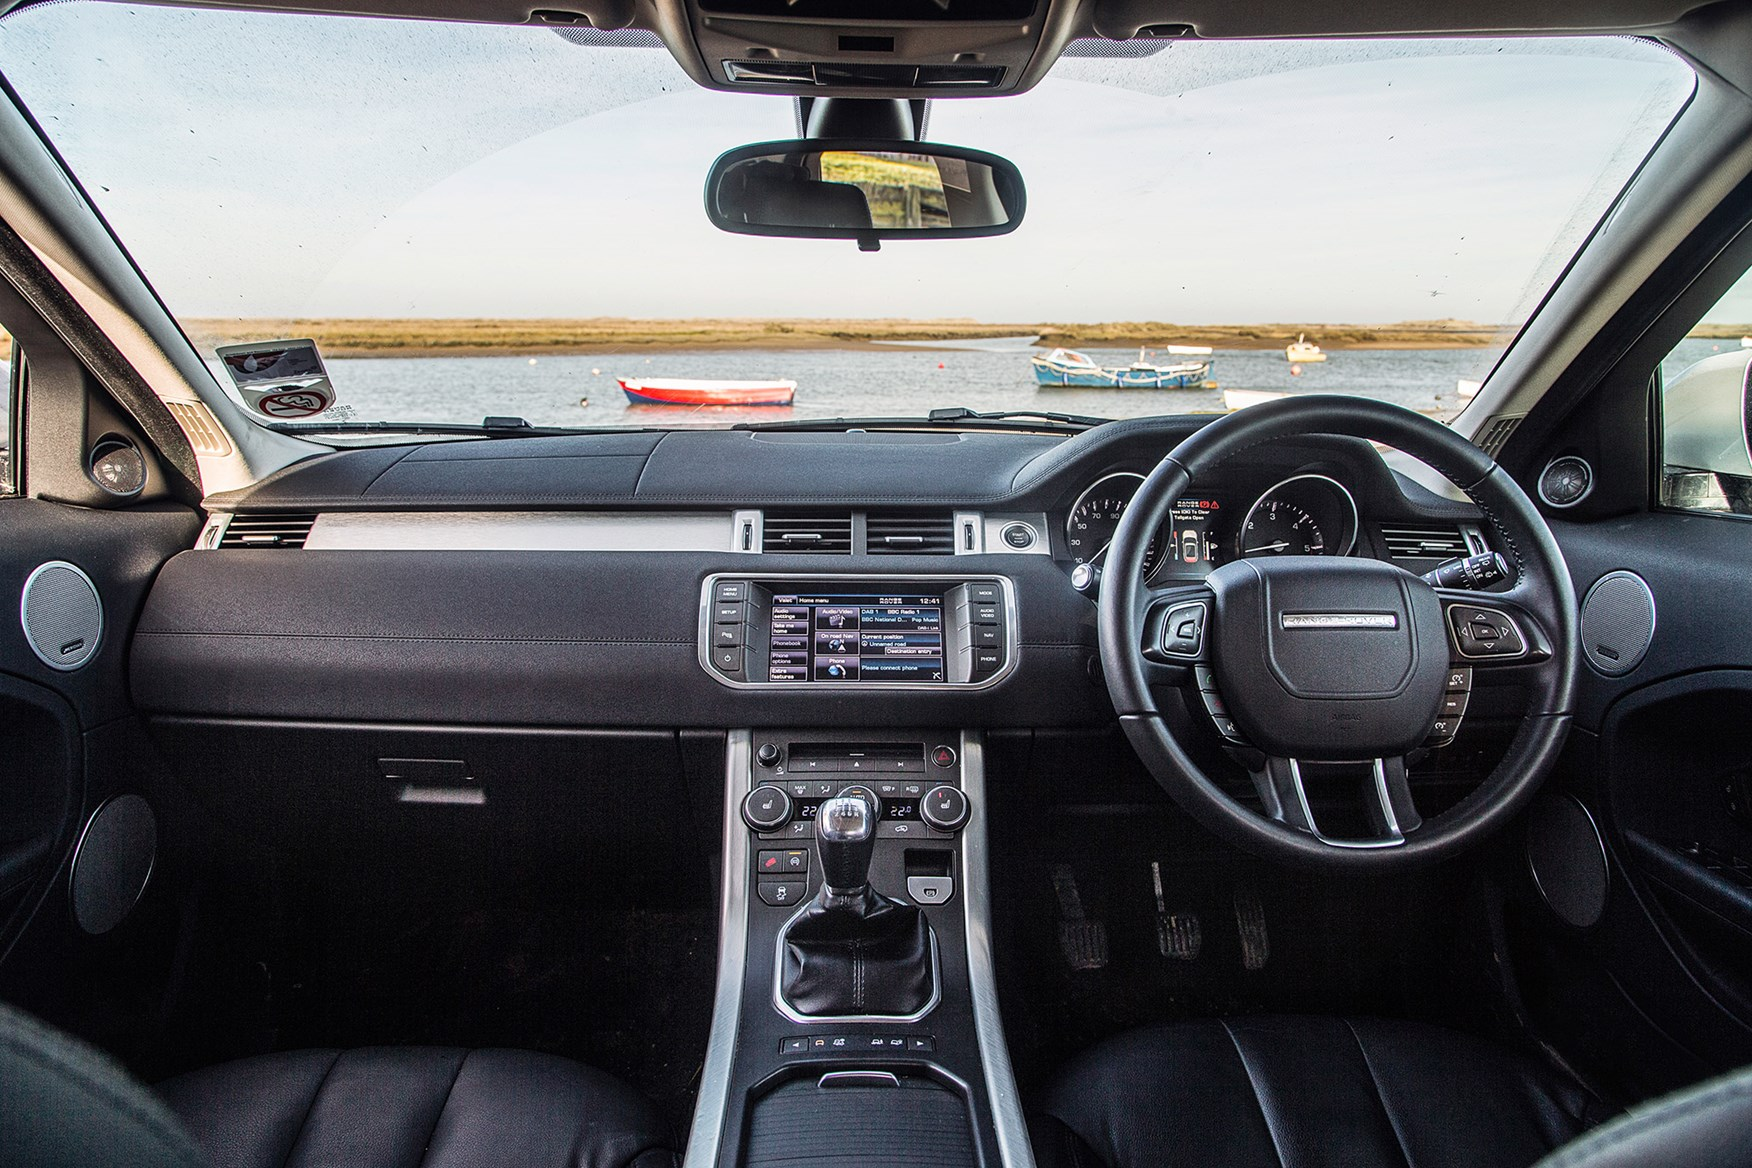 ... Range Rover Evoque cabin: feeling its age compared with the Discovery  Sport ...